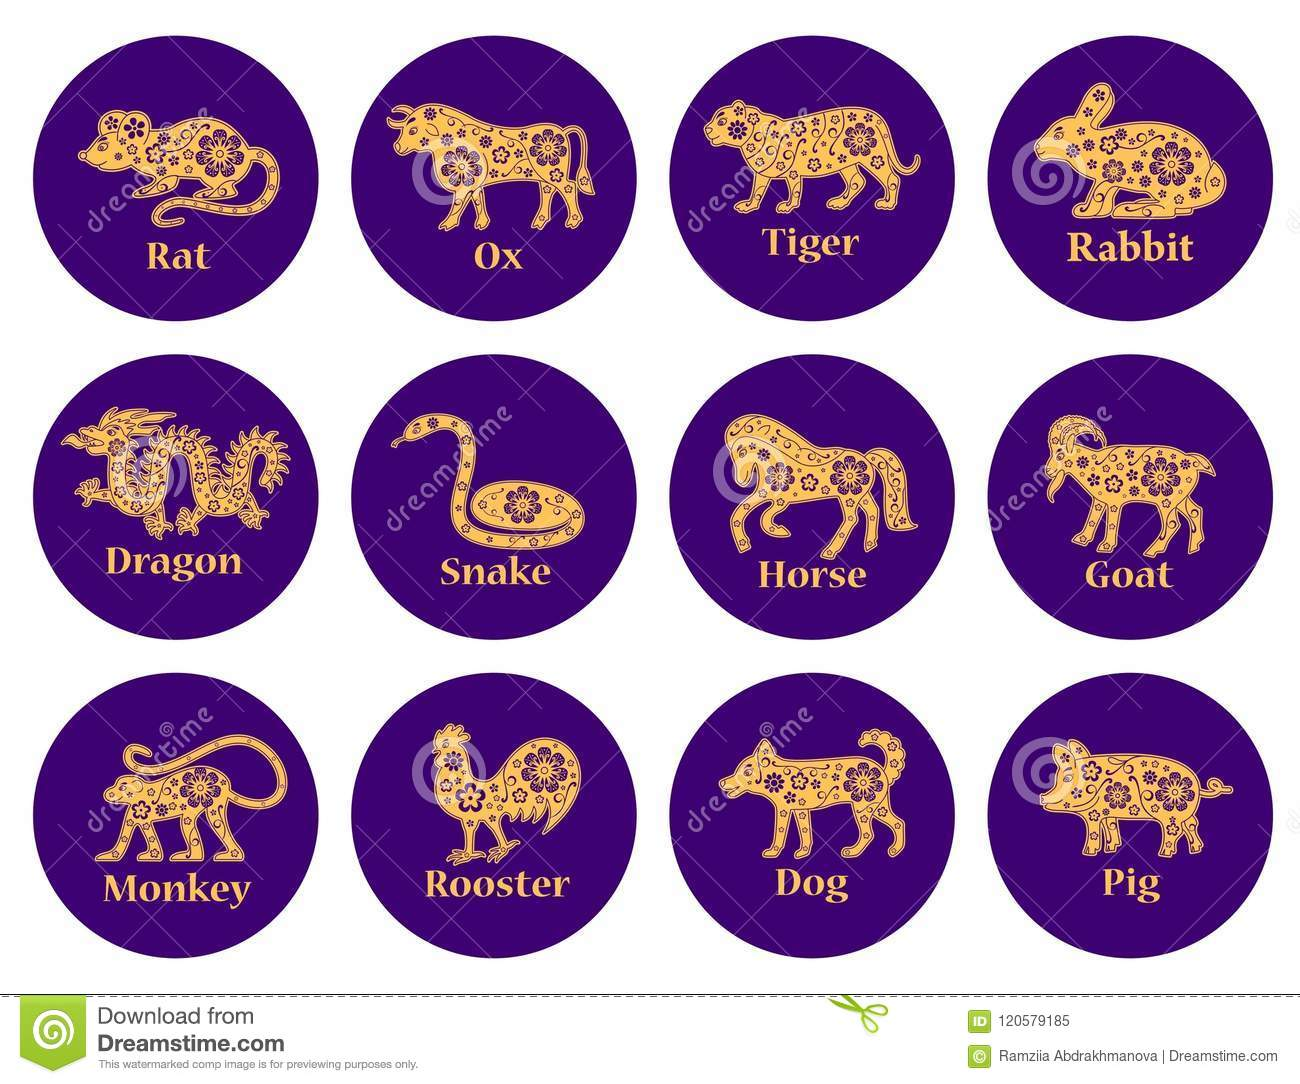 e198145e0 Chinese horoscope 2019, 2020, 2021 and 2022, 2023, 2024 and 2025 years.  Rat, ox, tiger and rabbit, dragon, snake and horse, goat, monkey and  rooster, dog ...